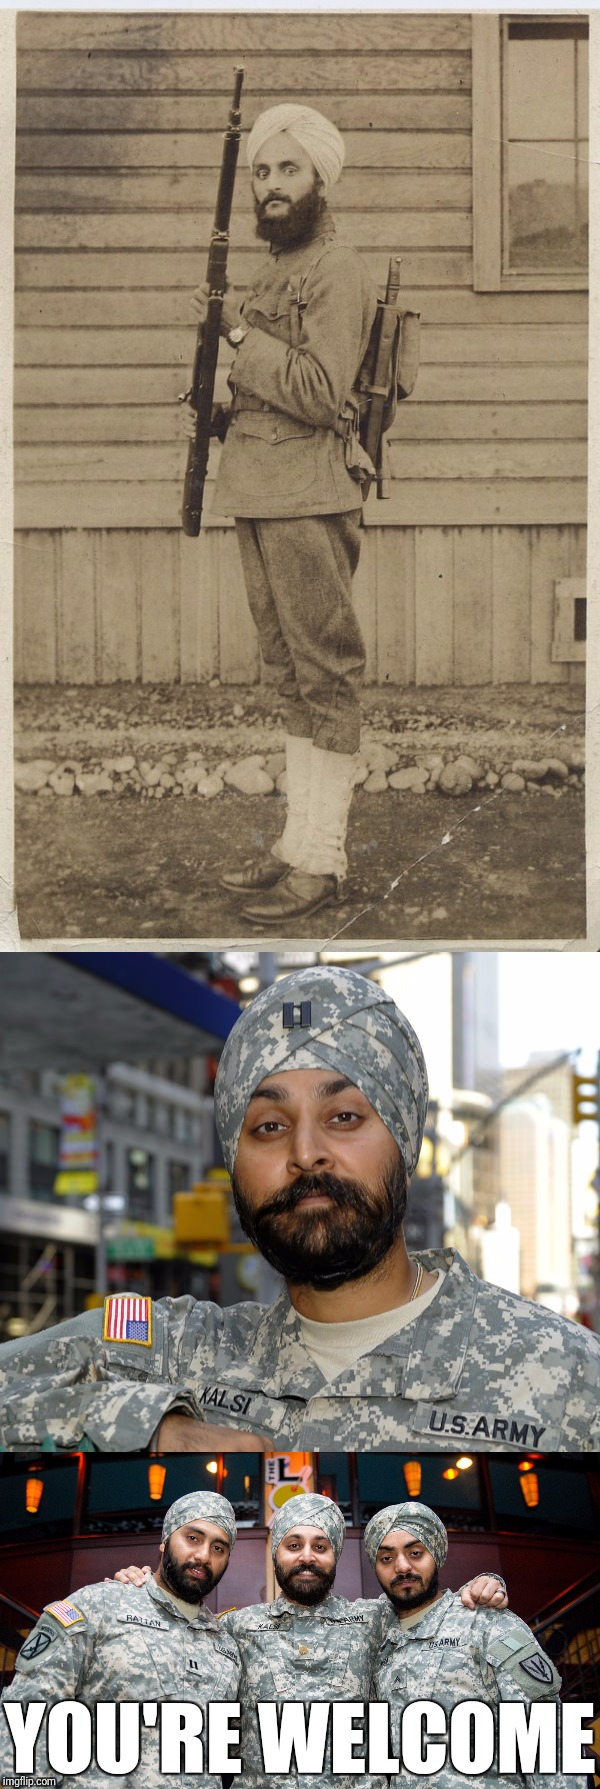 VETERANS DAY SALUTE! SIKHS HAVE SERVED IN THE US MILITARY SINCE WWI. THANK YOU FOR YOUR SERVICE. | YOU'RE WELCOME | image tagged in memes,us army,sikh,veterans day,thank you,you're welcome | made w/ Imgflip meme maker